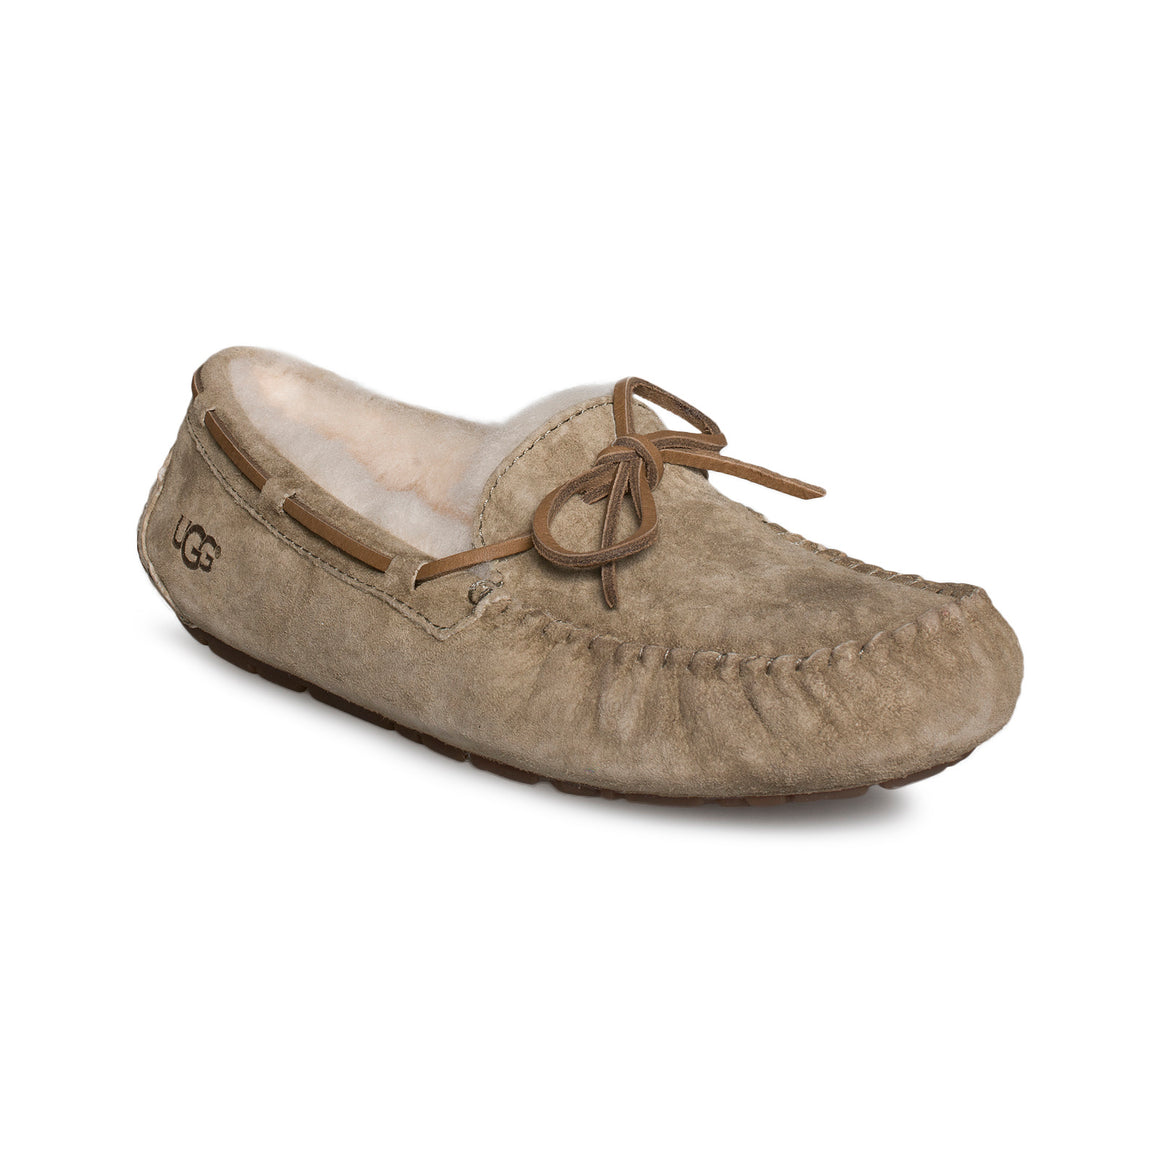 UGG Dakota Antilope Slippers - Women's